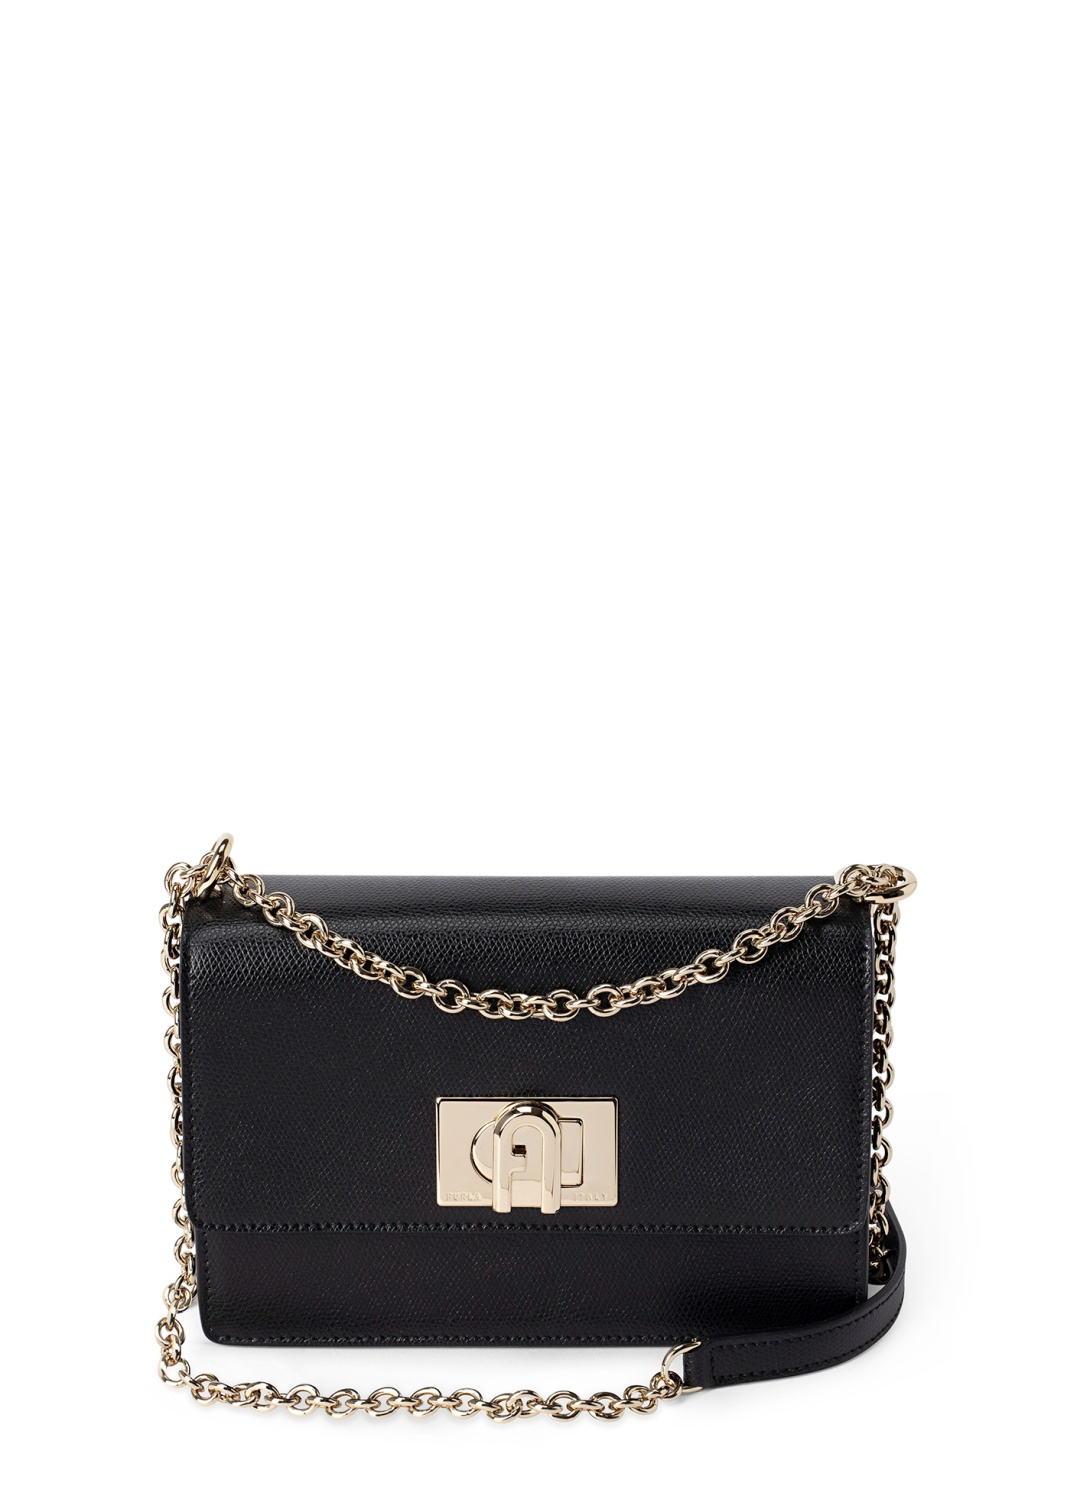 FURLA 1927 MINI CROSSBODY 20 image number 0